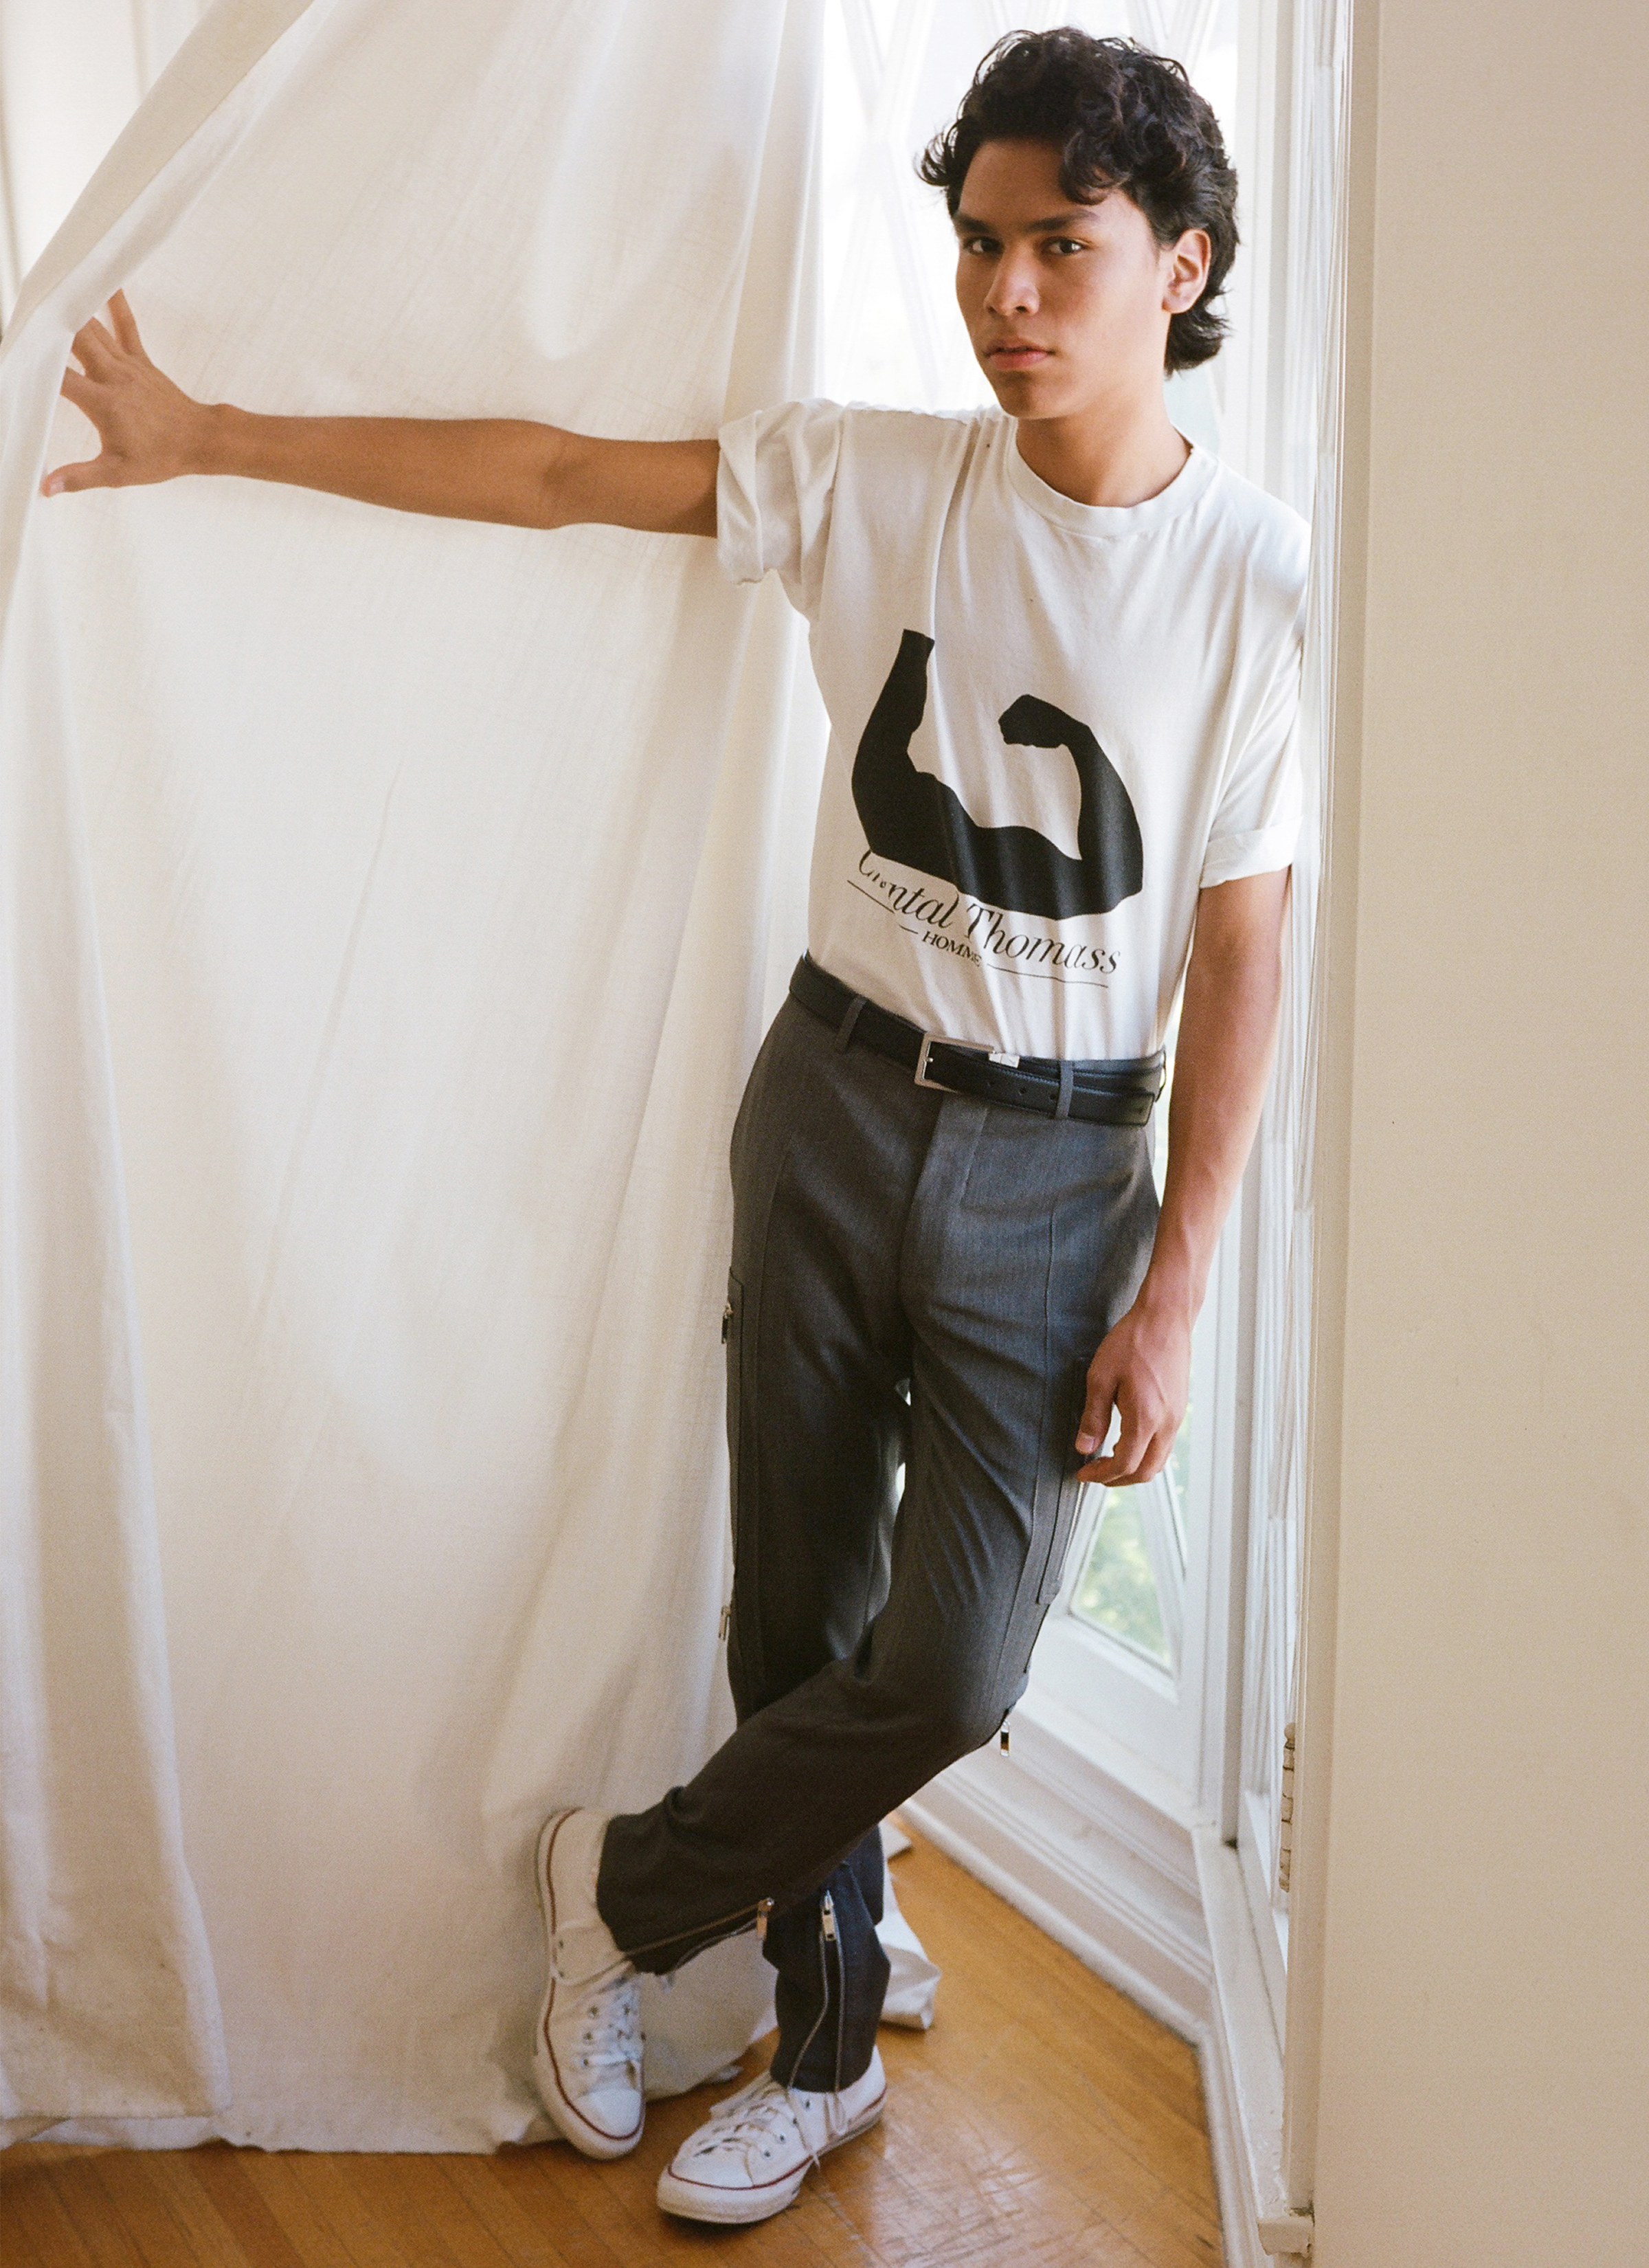 T-shirt, vintage Chantal Thomass from Chapel NYC. Trousers and belt by Dior Homme. Sneakers by Converse.